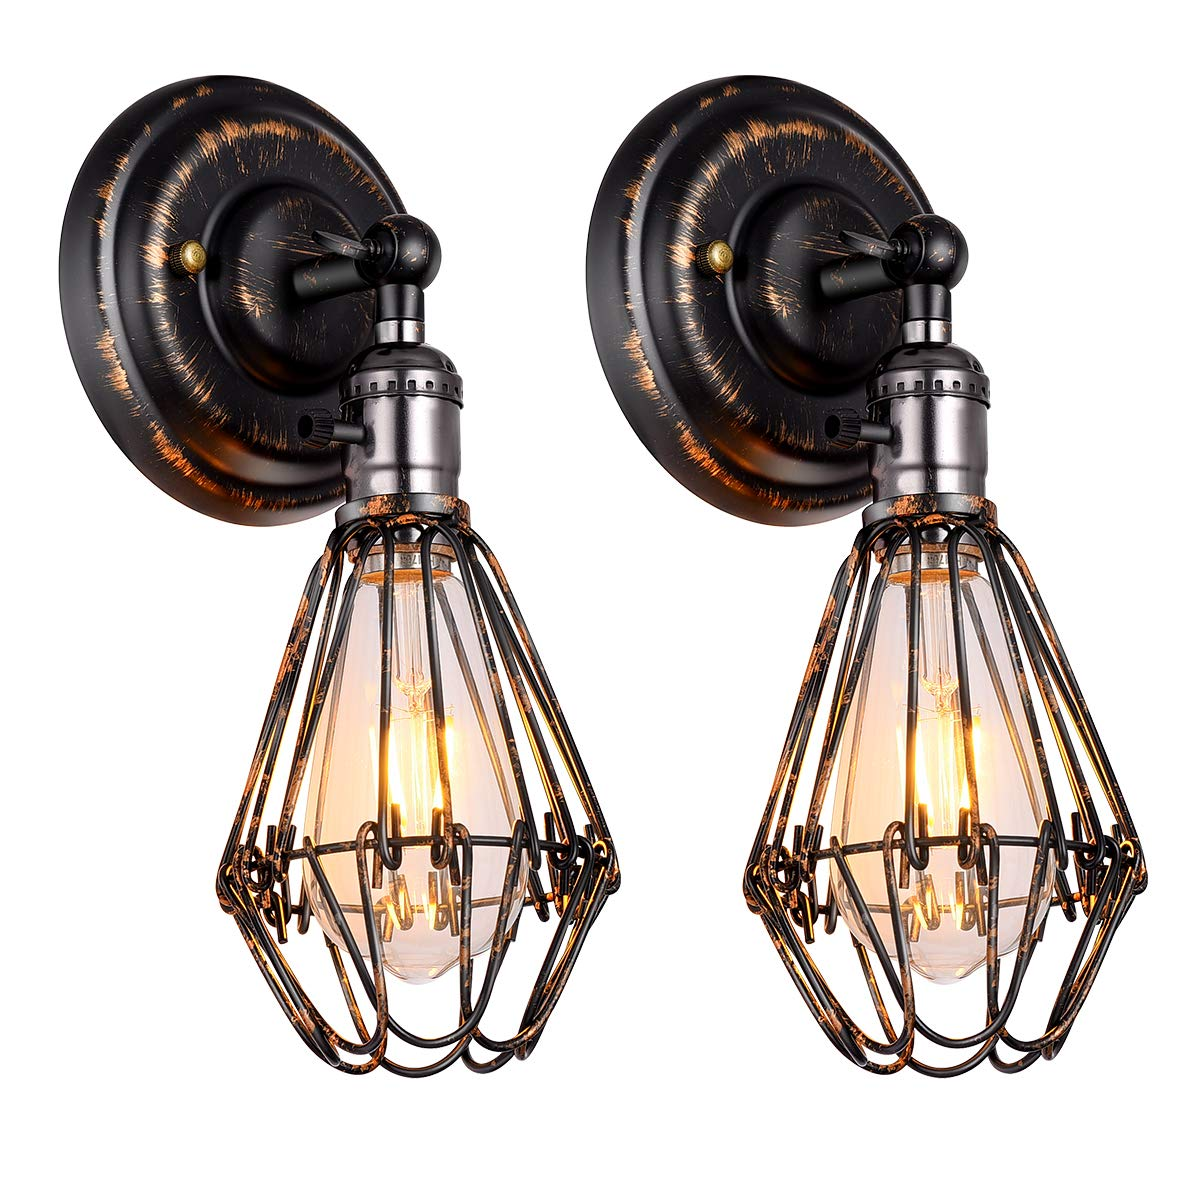 2 Pack Wire Cage Wall Sconce Bronze and Black Finish Metal Industrial Wall Light Shade Vintage Style Mini Antique Fixture with On/Off Switch for Headboard Bedroom Farmhouse Garage Barn Door Porch